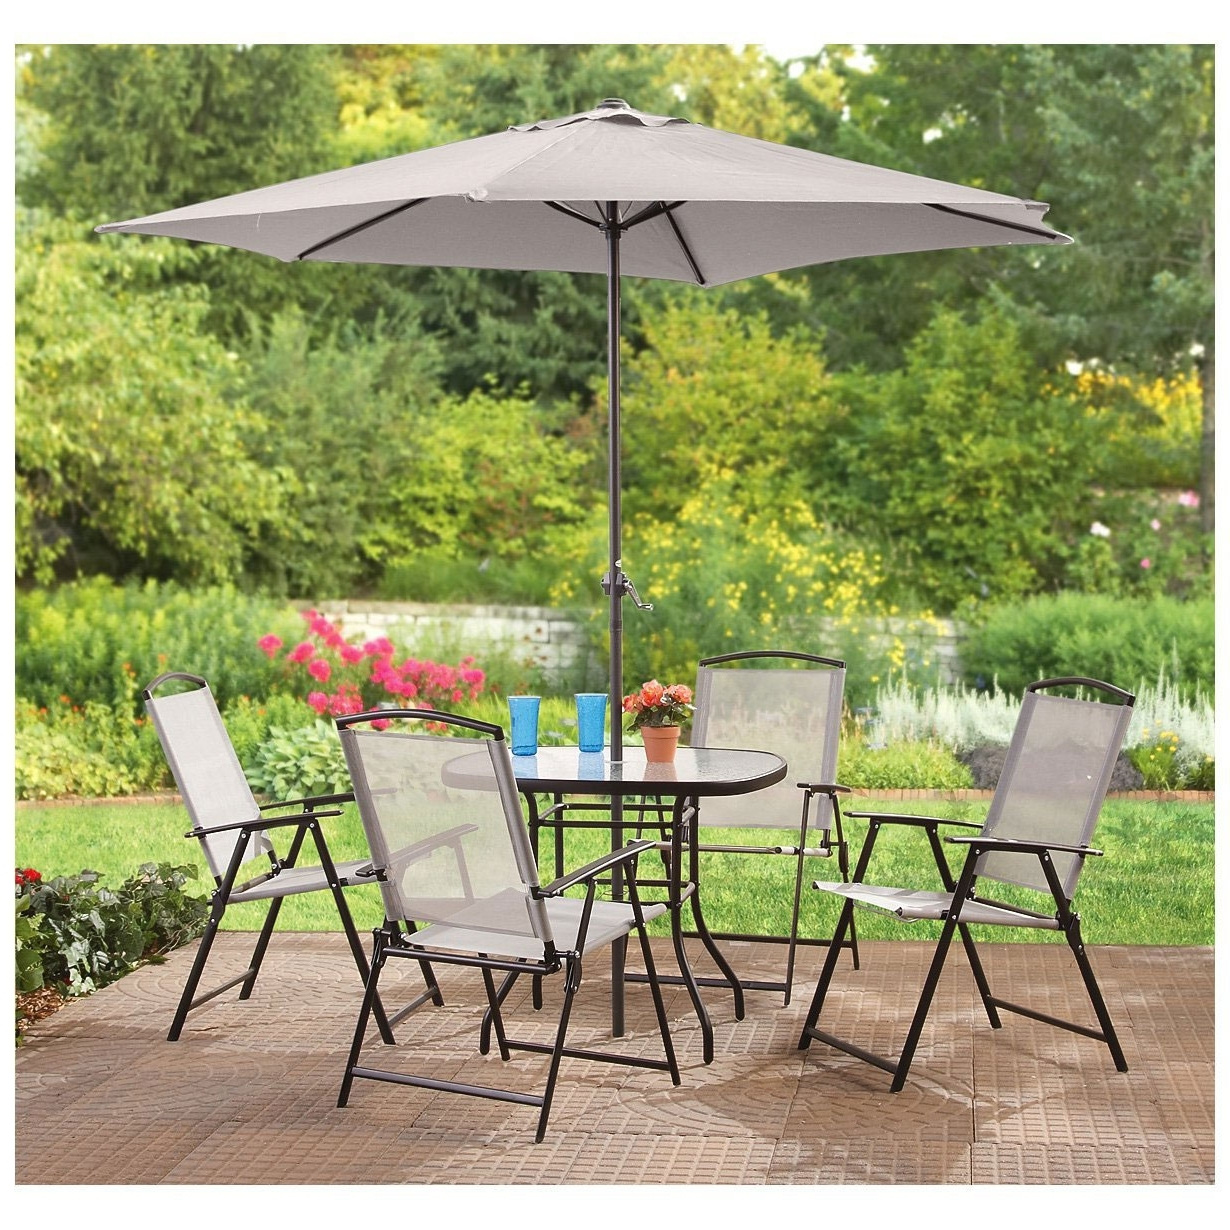 Round Outdoor Dining Table With Umbrella Patio Furniture Sets For 6 Intended For Famous Patio Dining Sets With Umbrellas (Gallery 15 of 20)